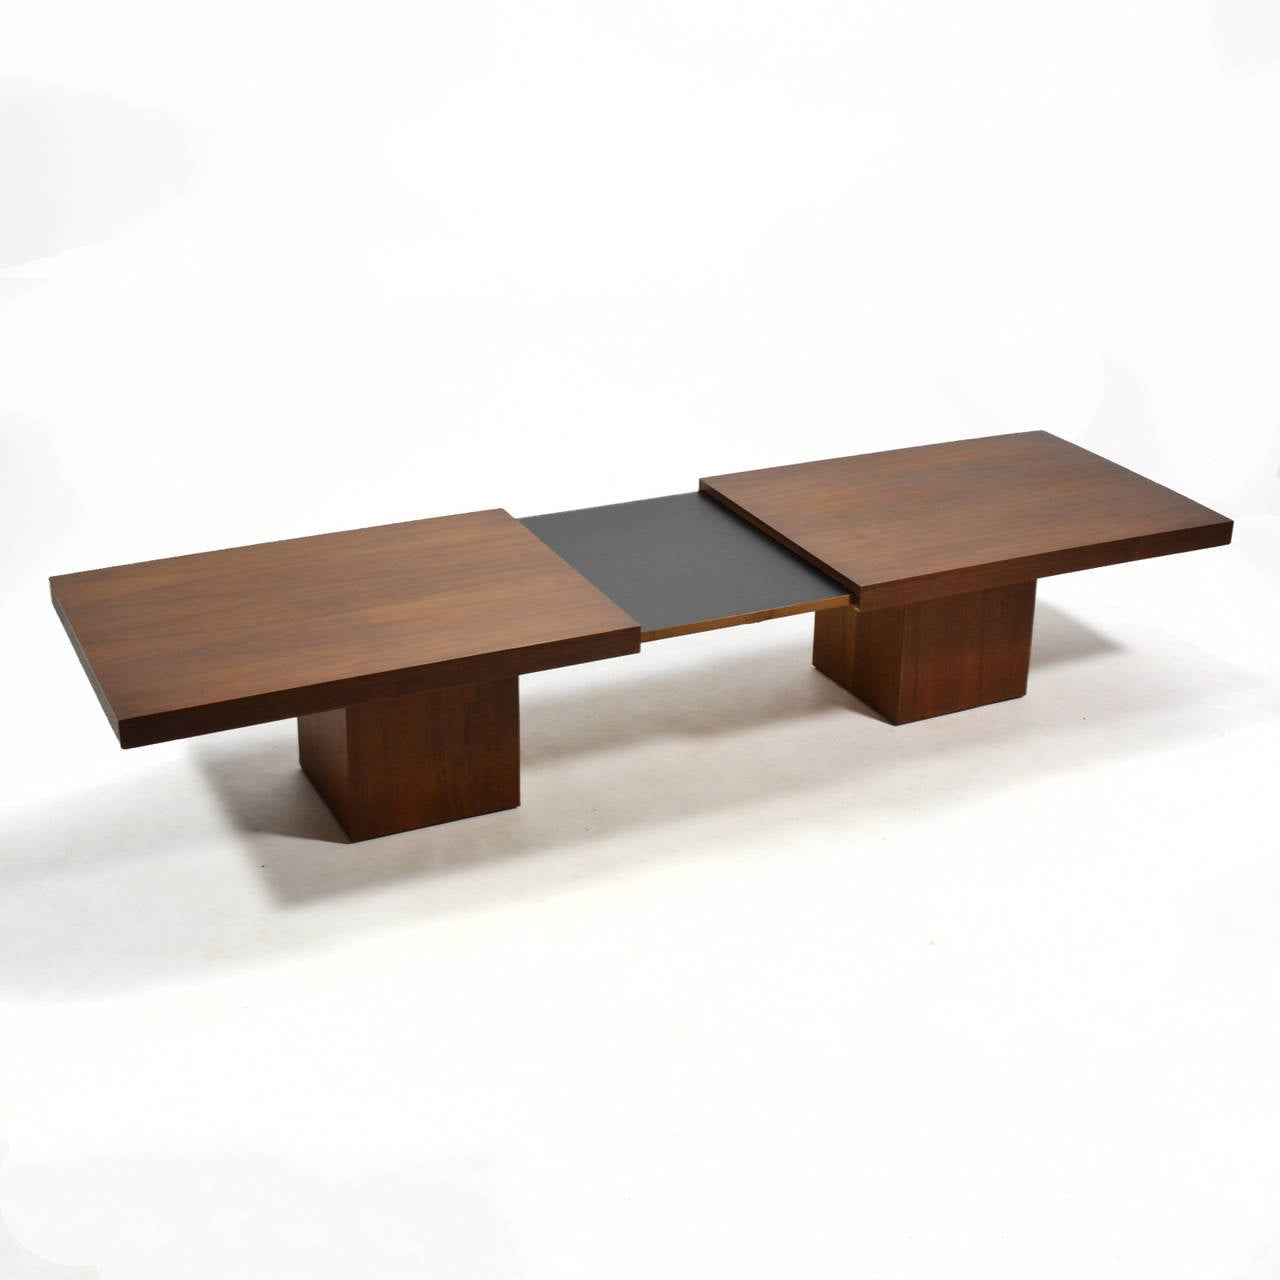 Expandable Coffee Table john keal expanding coffee tablebrown saltman for sale at 1stdibs